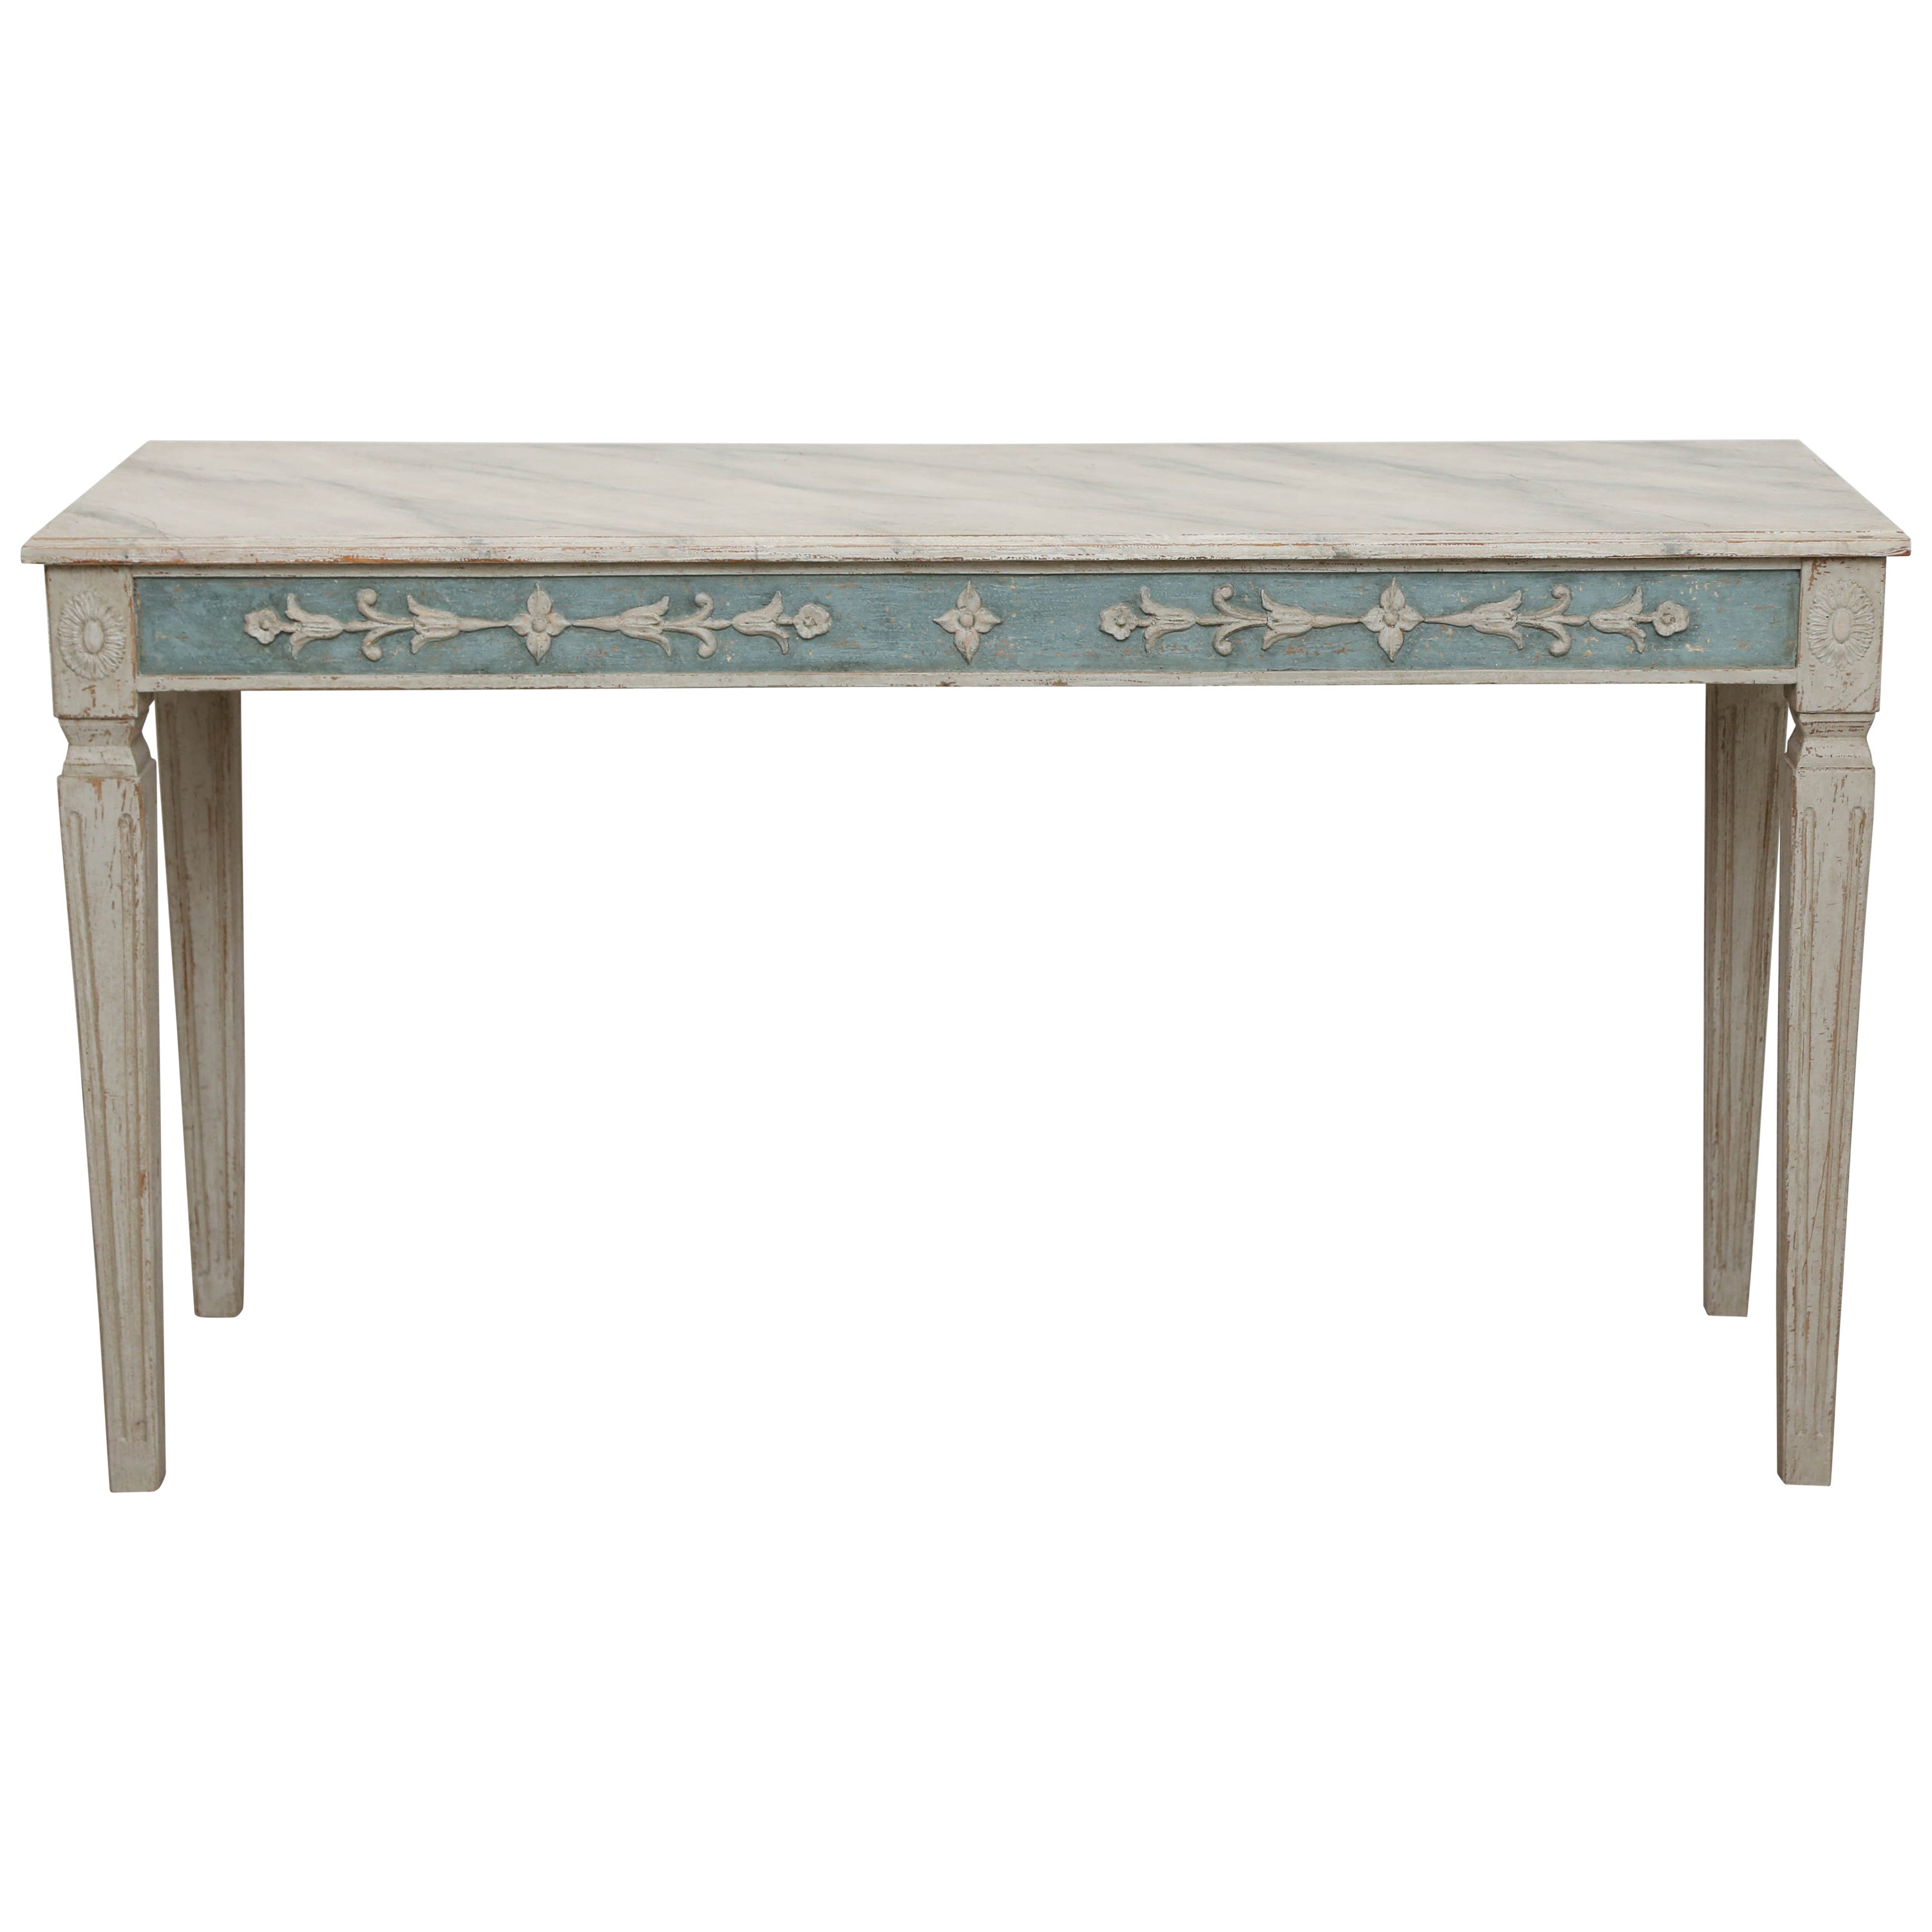 a2500ef09228f Antique Swedish Gustavian Style Painted Console Table